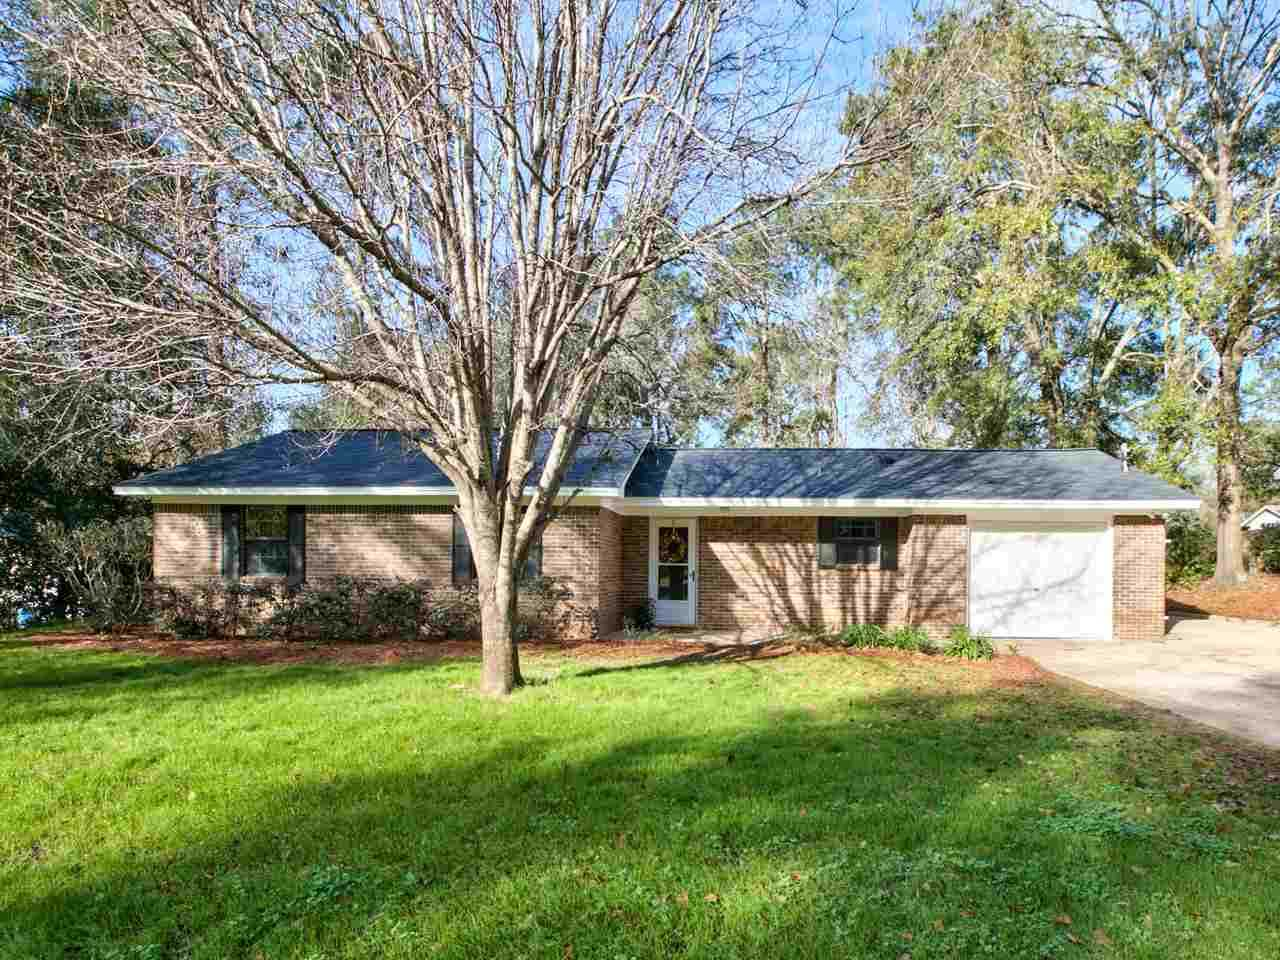 6522 Iron Liege Trail Tallahassee, FL 32309 in Killearn Acres Photo 1